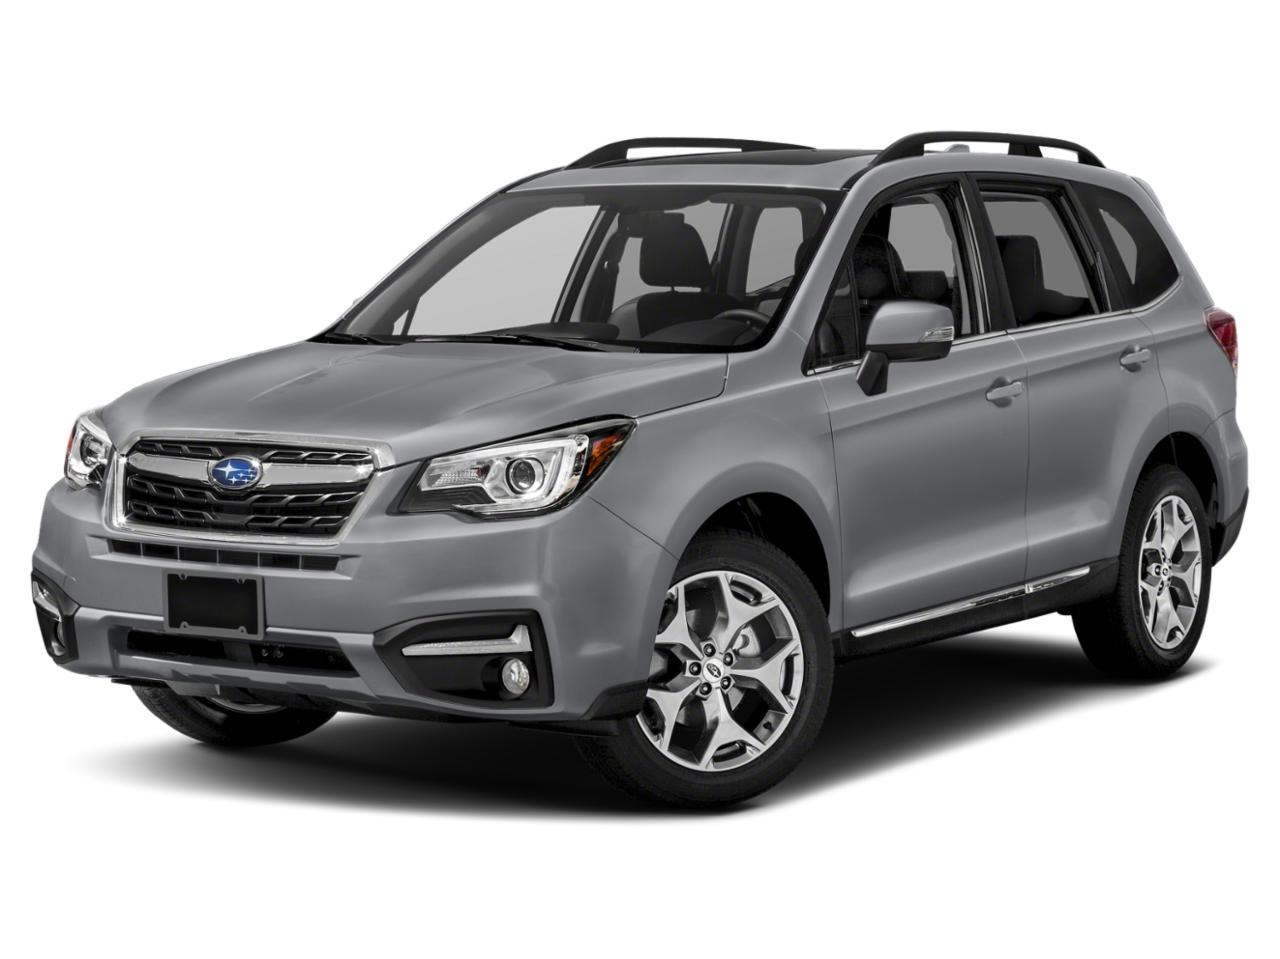 2018 Subaru Forester Vehicle Photo in FORT WORTH, TX 76116-6648